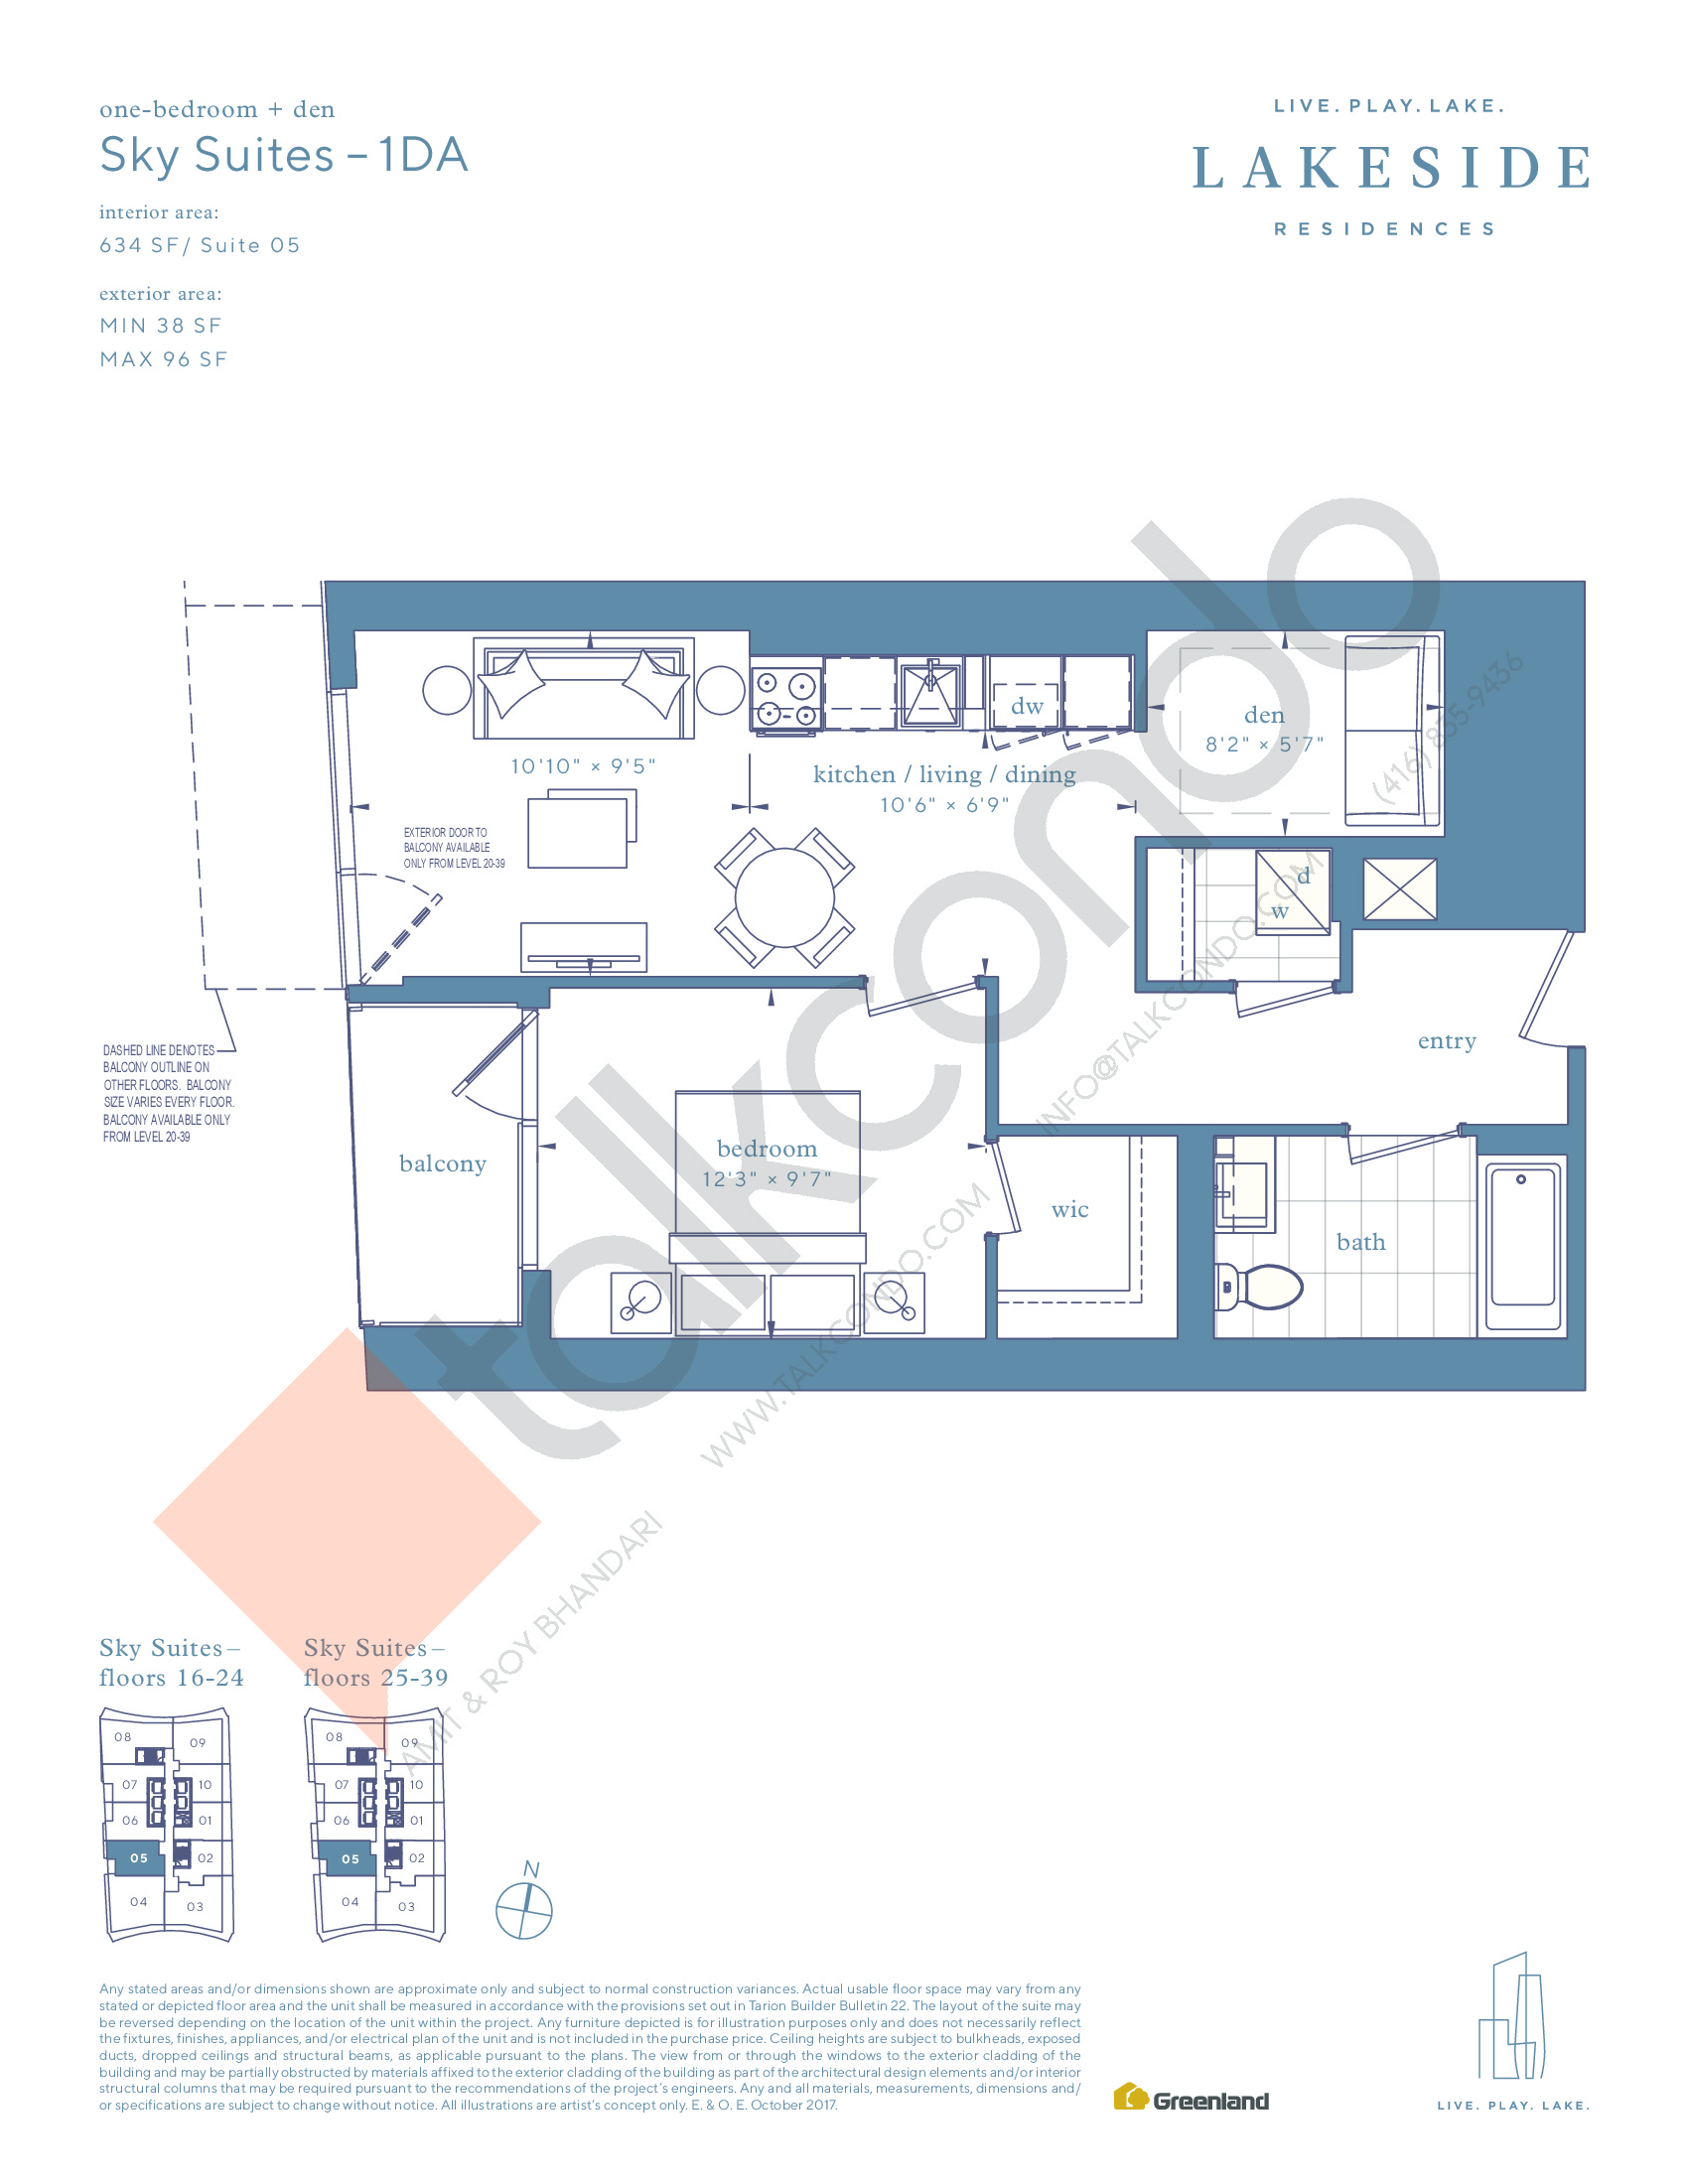 Sky Suites - 1DA Floor Plan at Lakeside Residences - 634 sq.ft